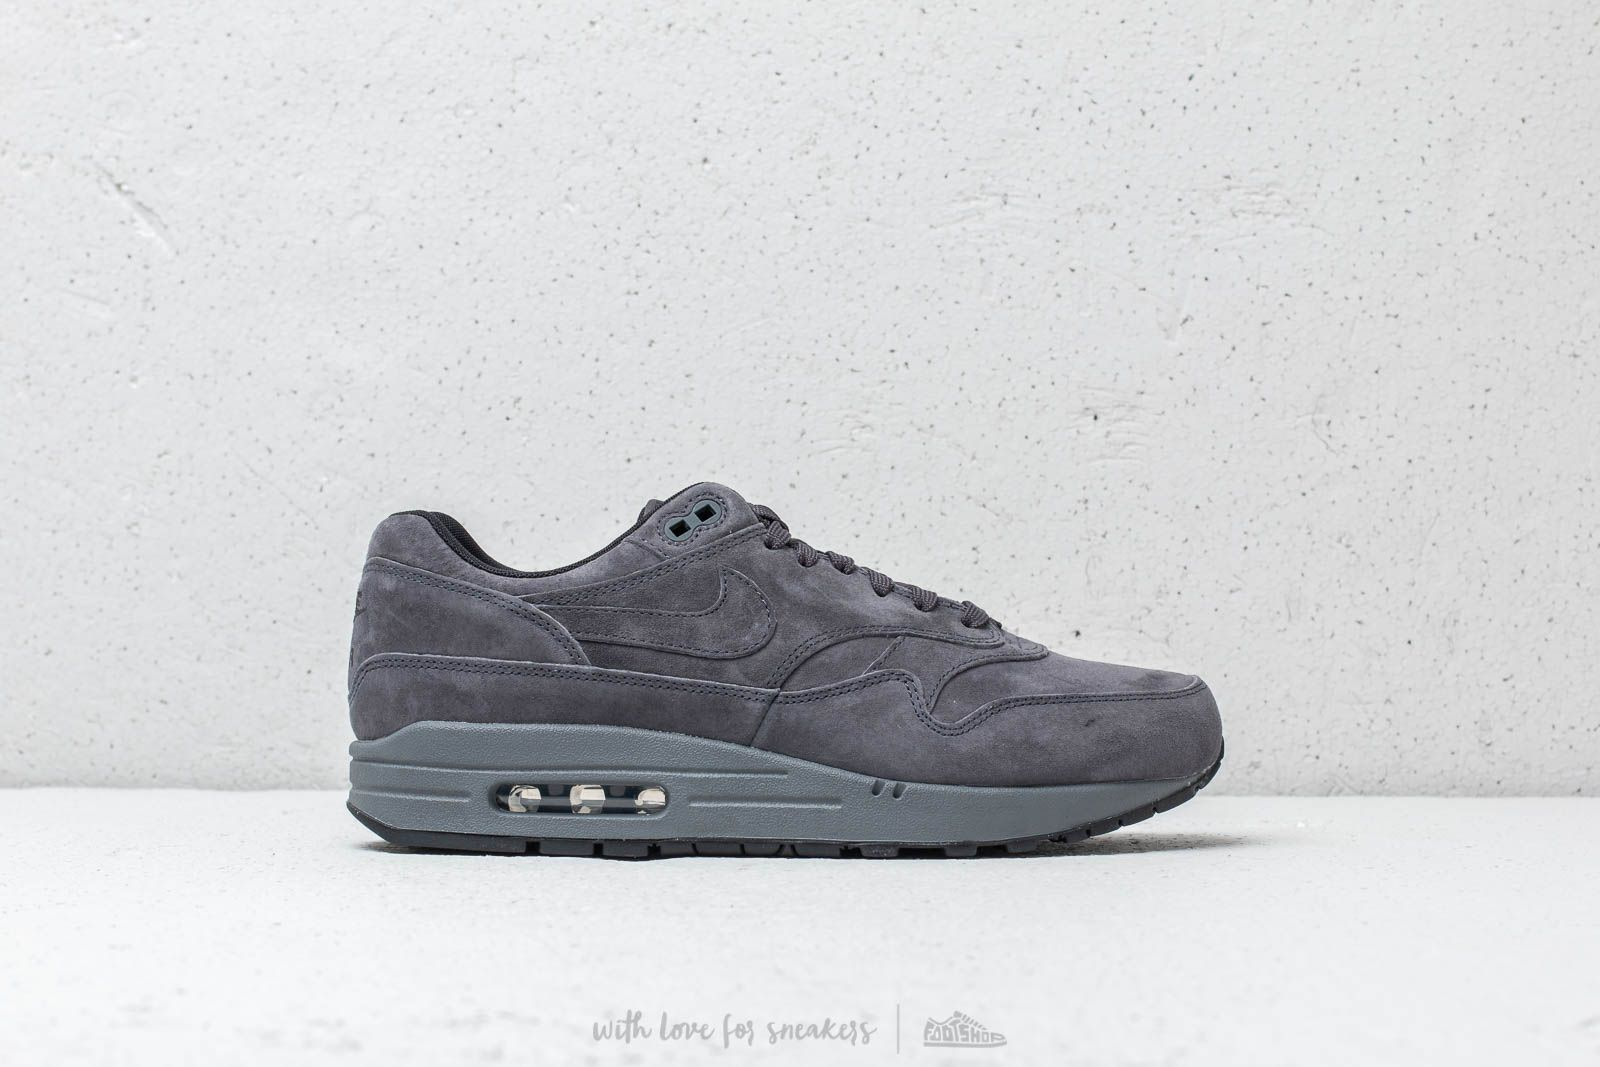 Nike Air Max 1 Premium Antracite  Antracite-Black at a great price 139 € 6153b71a7